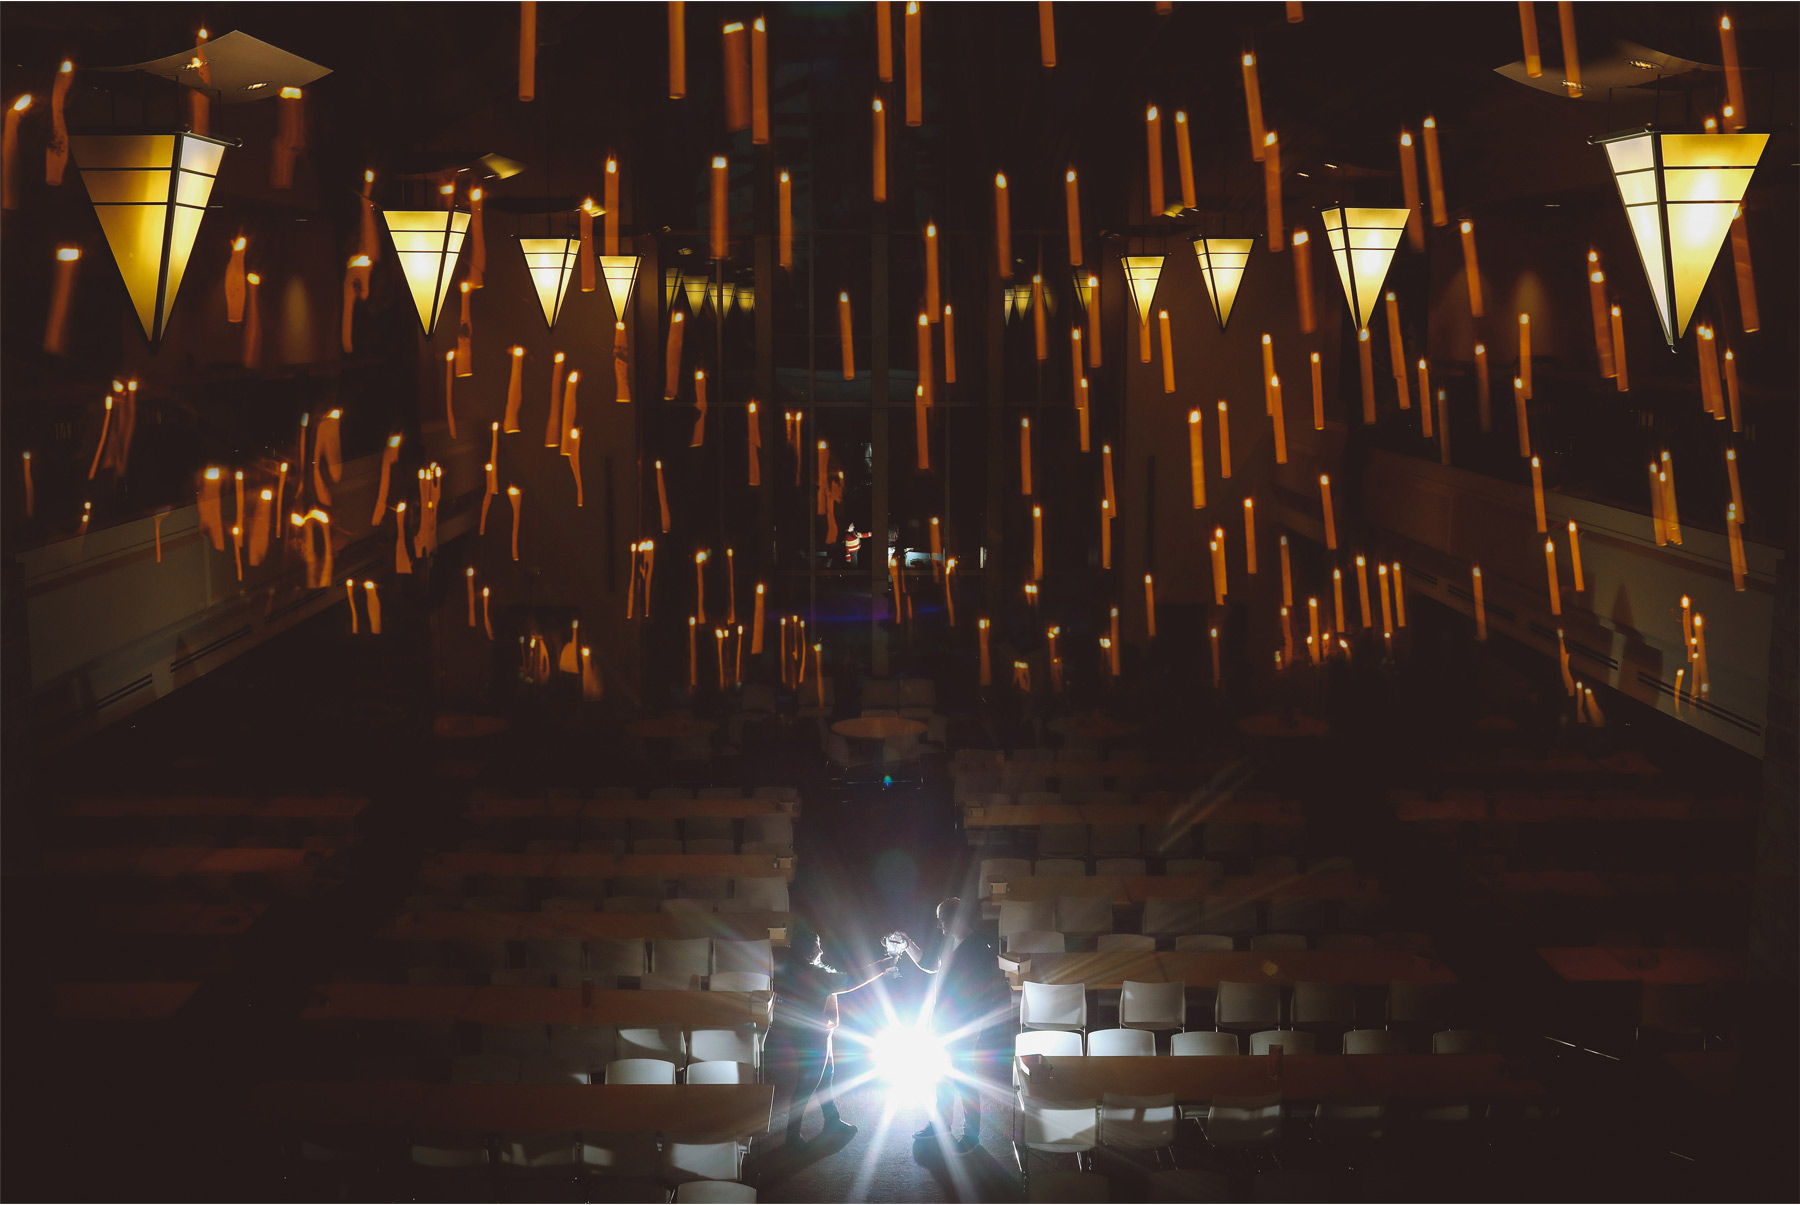 05-Harry-Potter-Themed-Engagement-Session-Minnesota-Wedding-Photography-Andrew-Vick-Gyffindor-Triwizard-Tournament-Cup-Great-Hall-Floating-Candles-Elena-and-Doug.jpg